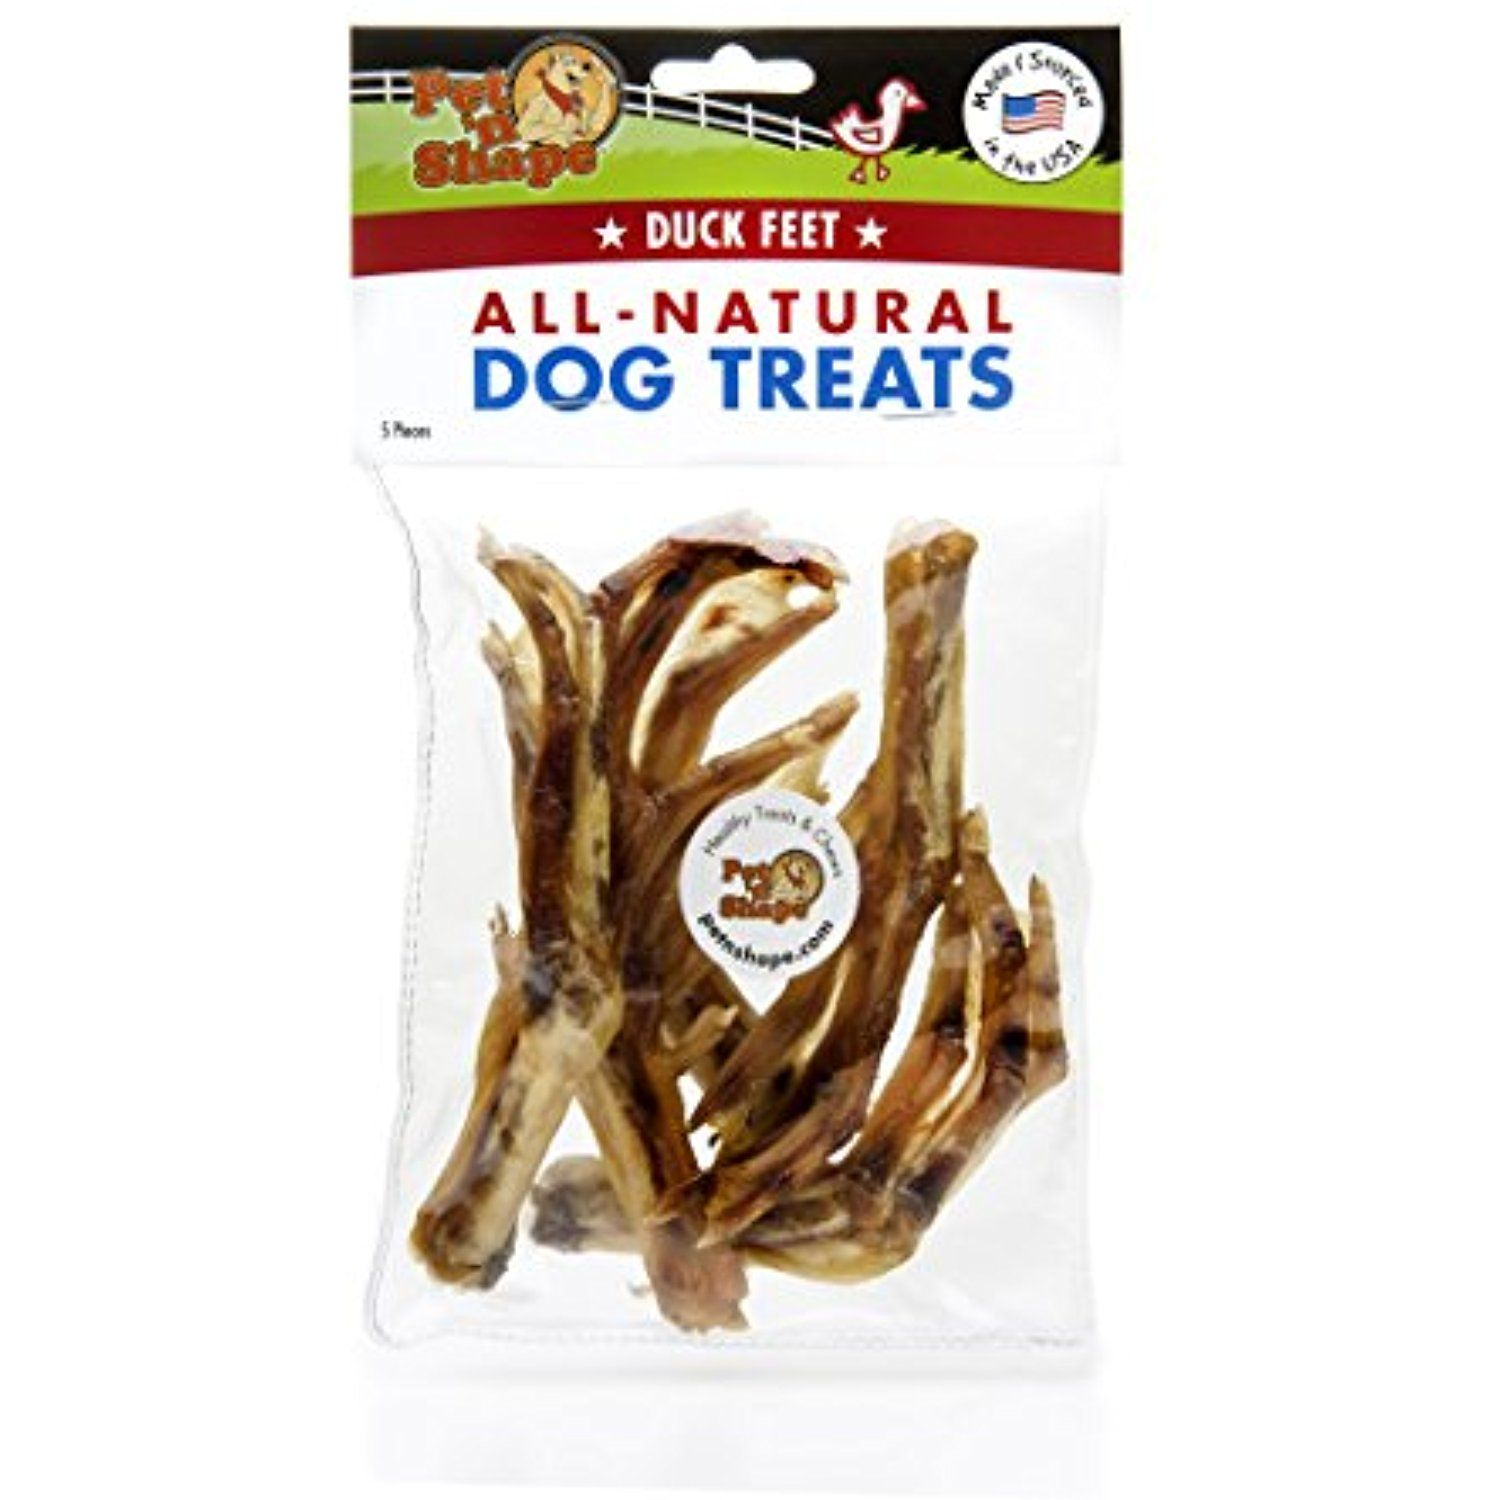 Pet n shape made in usa all natural dog chews duck